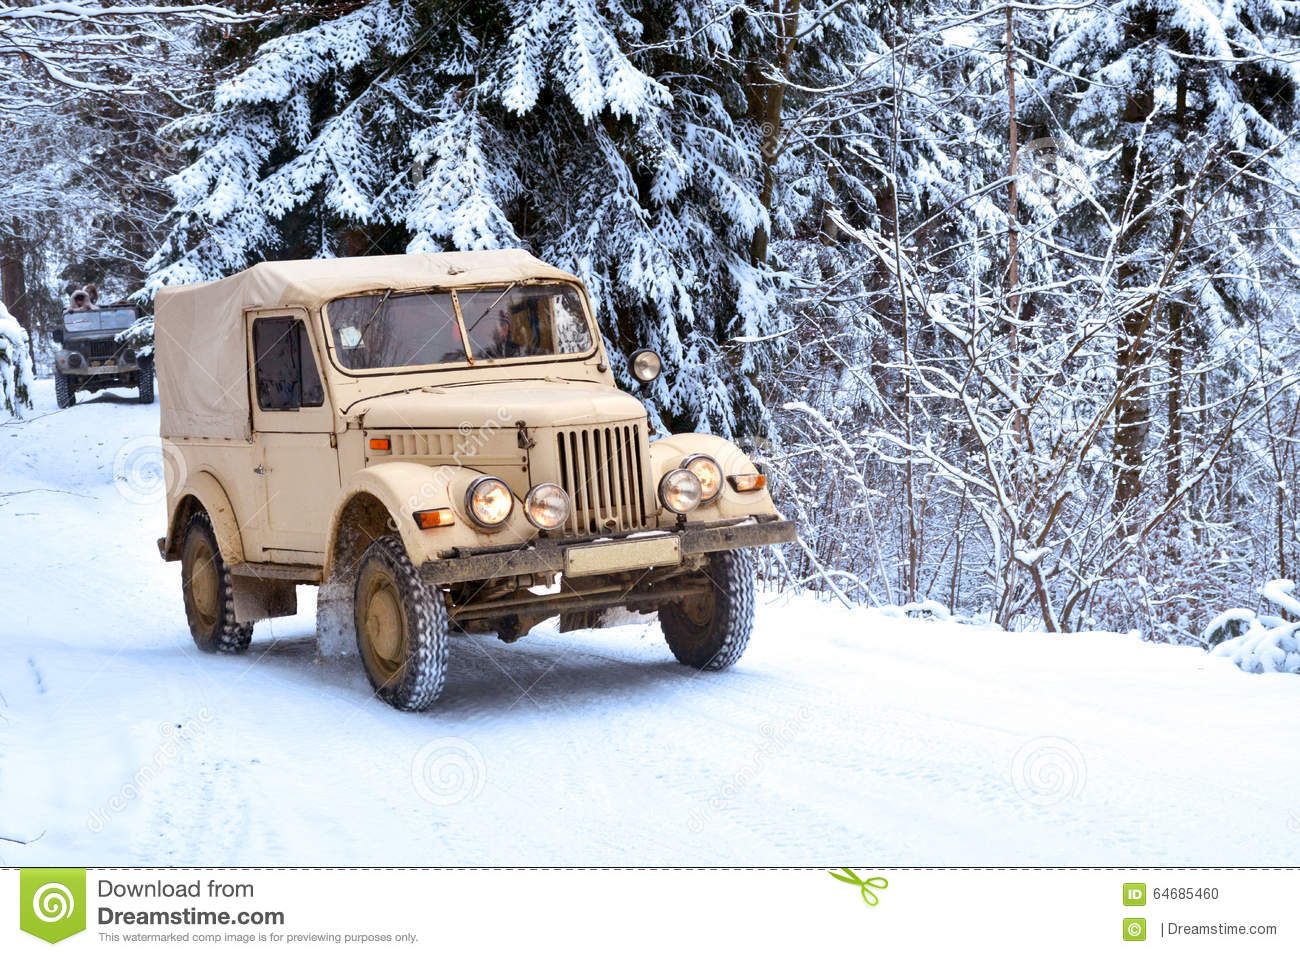 Download Winter Forest Offroad Journey Stock Photo - Image of evergreens, outdoors: 64685460